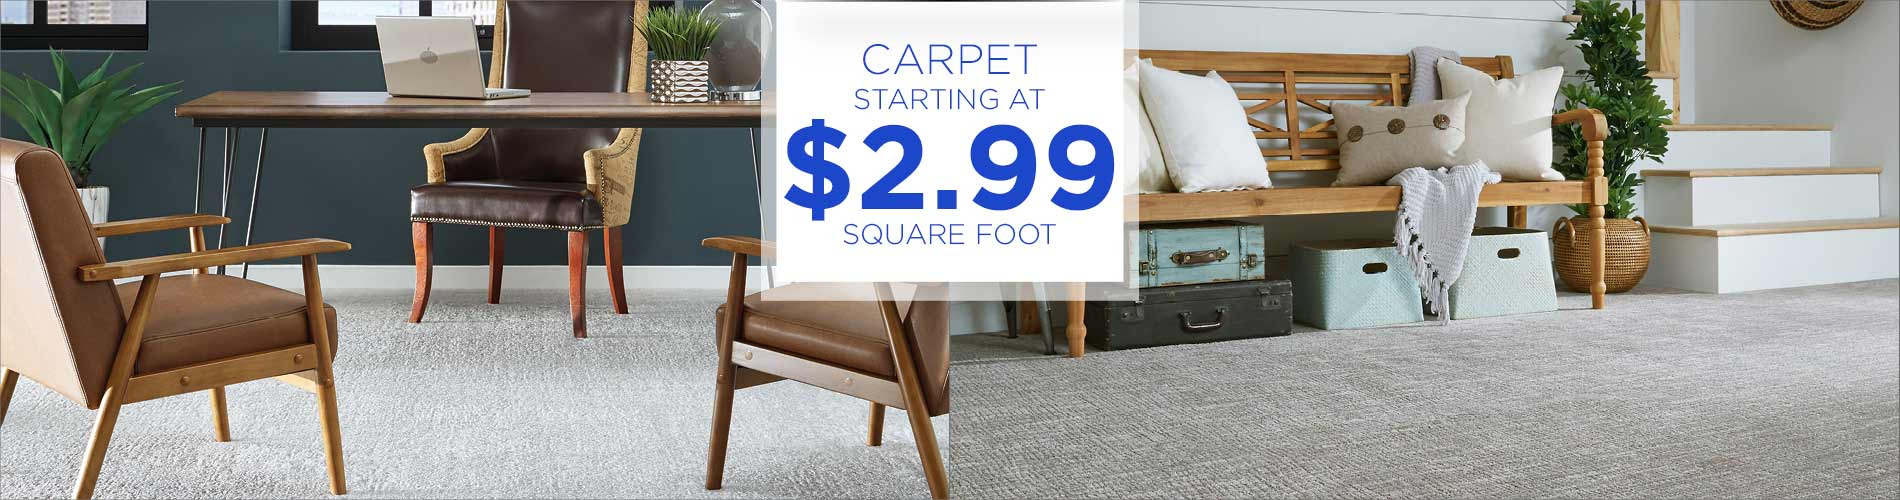 Carpet $2.99 sq.ft. during our Grand Opening Sale at Abbey Carpet & Floor Outlet!